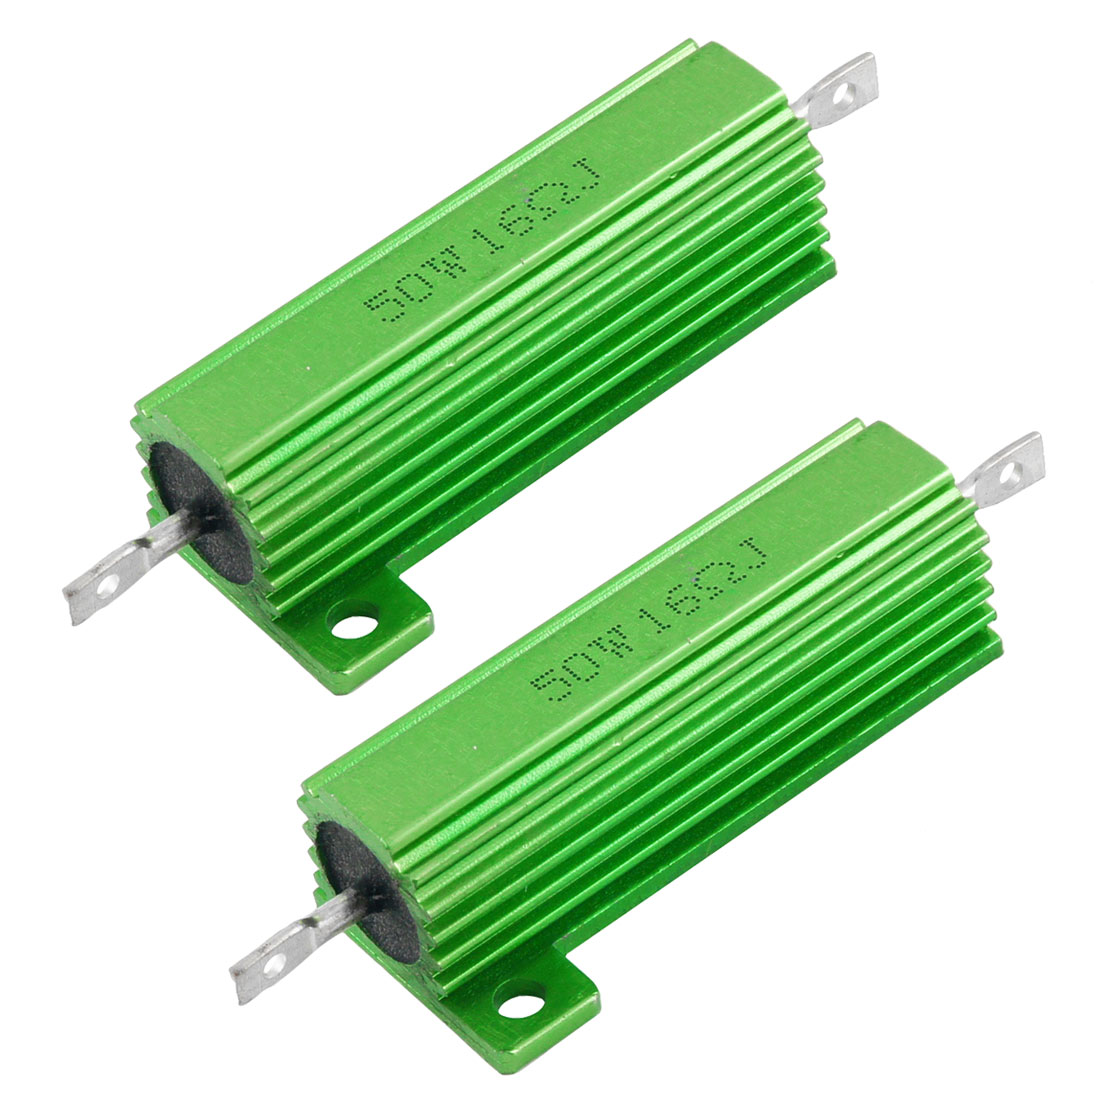 2 Pcs Chassis Mount Green Wirewound Aluminium Housed Resistor 50W 16 Ohm